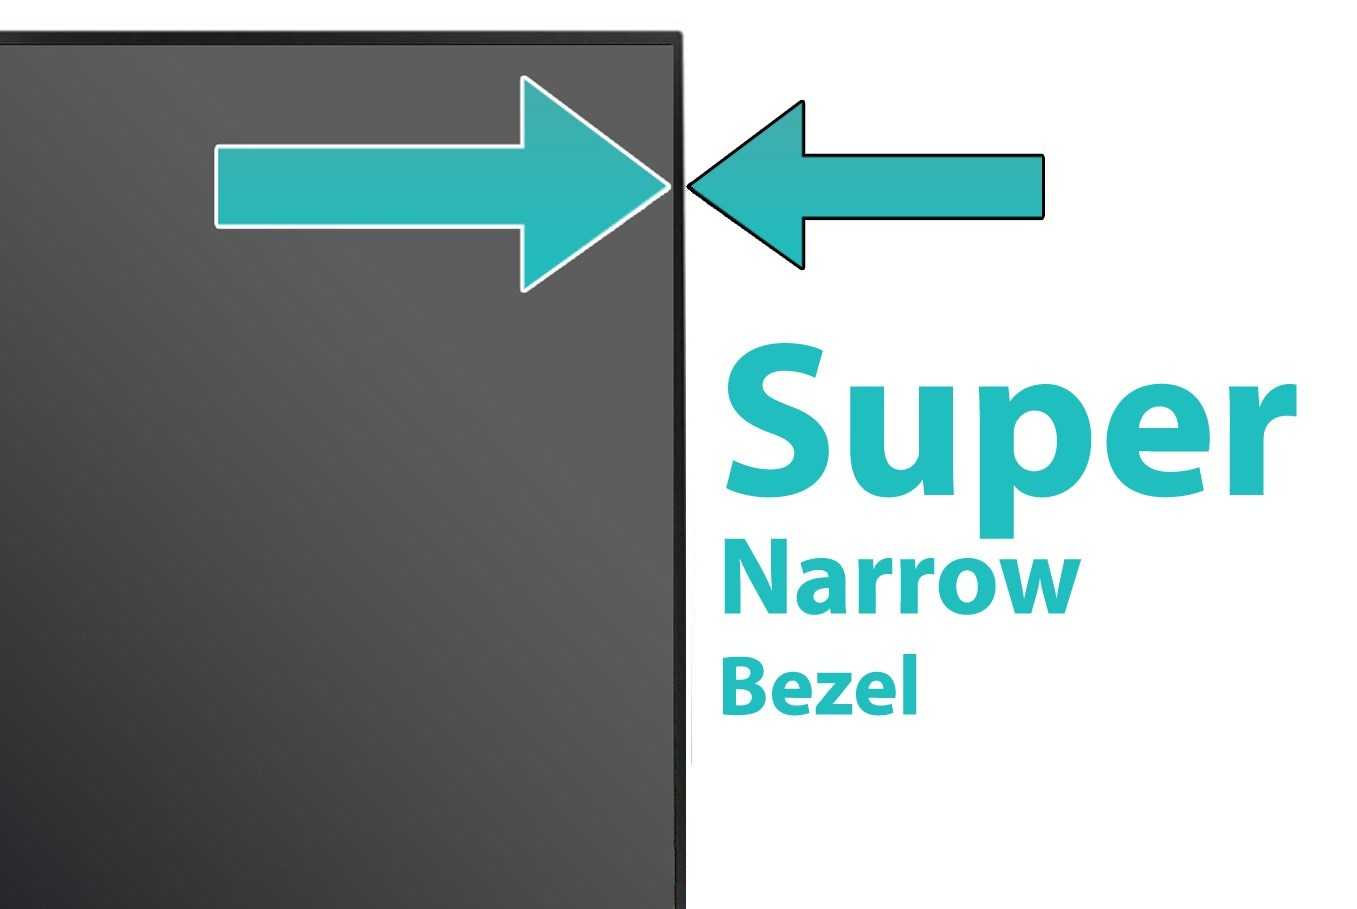 narrow bezel